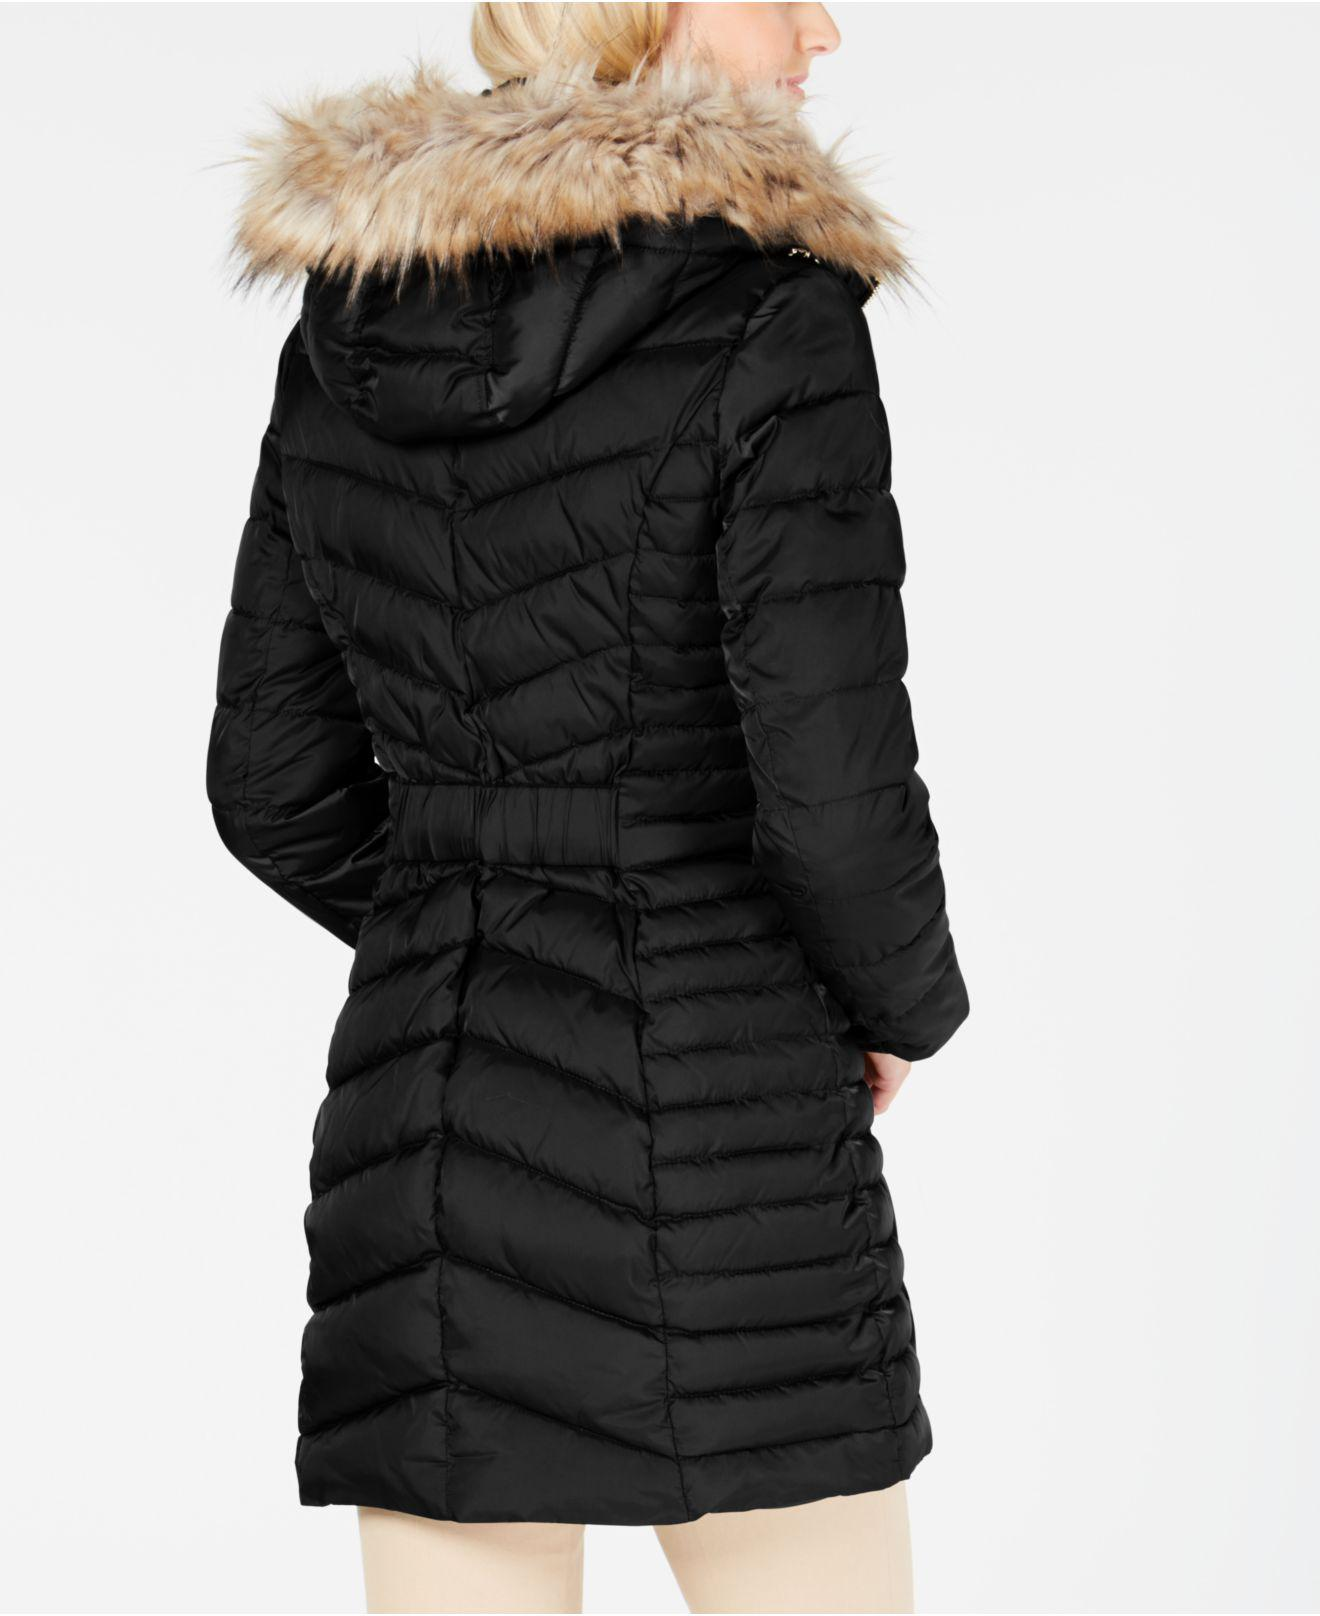 5007a0622 Laundry by Shelli Segal Faux-fur-trim Hooded Quilted-panel Puffer ...